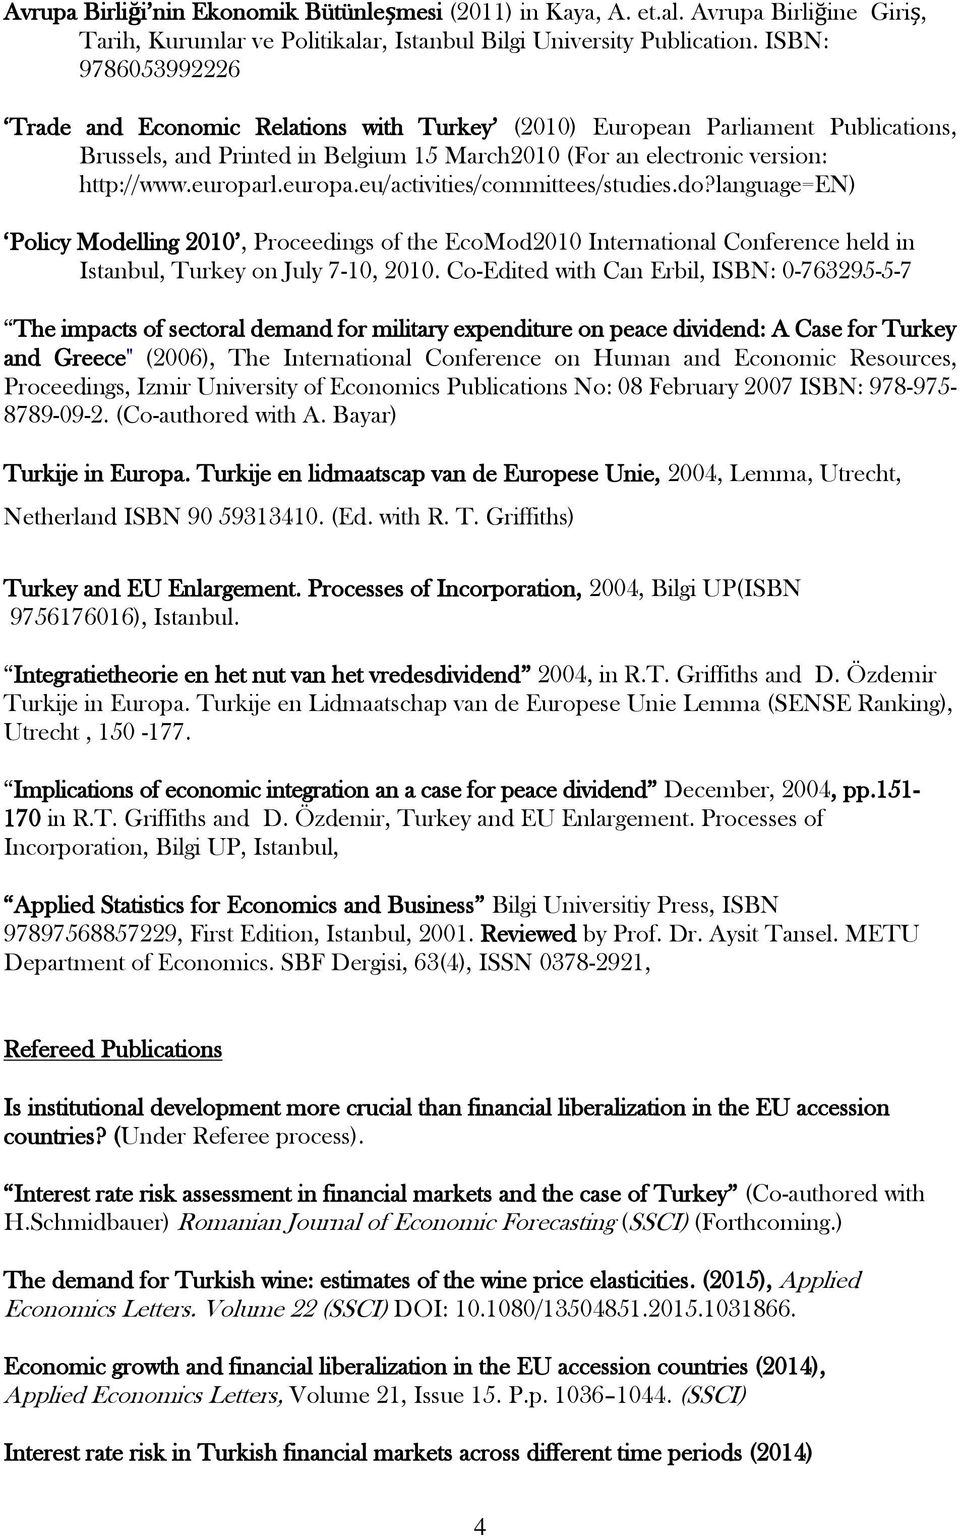 europa.eu/activities/committees/studies.do?language=en) Policy Modelling 2010, Proceedings of the EcoMod2010 International Conference held in Istanbul, Turkey on July 7-10, 2010.